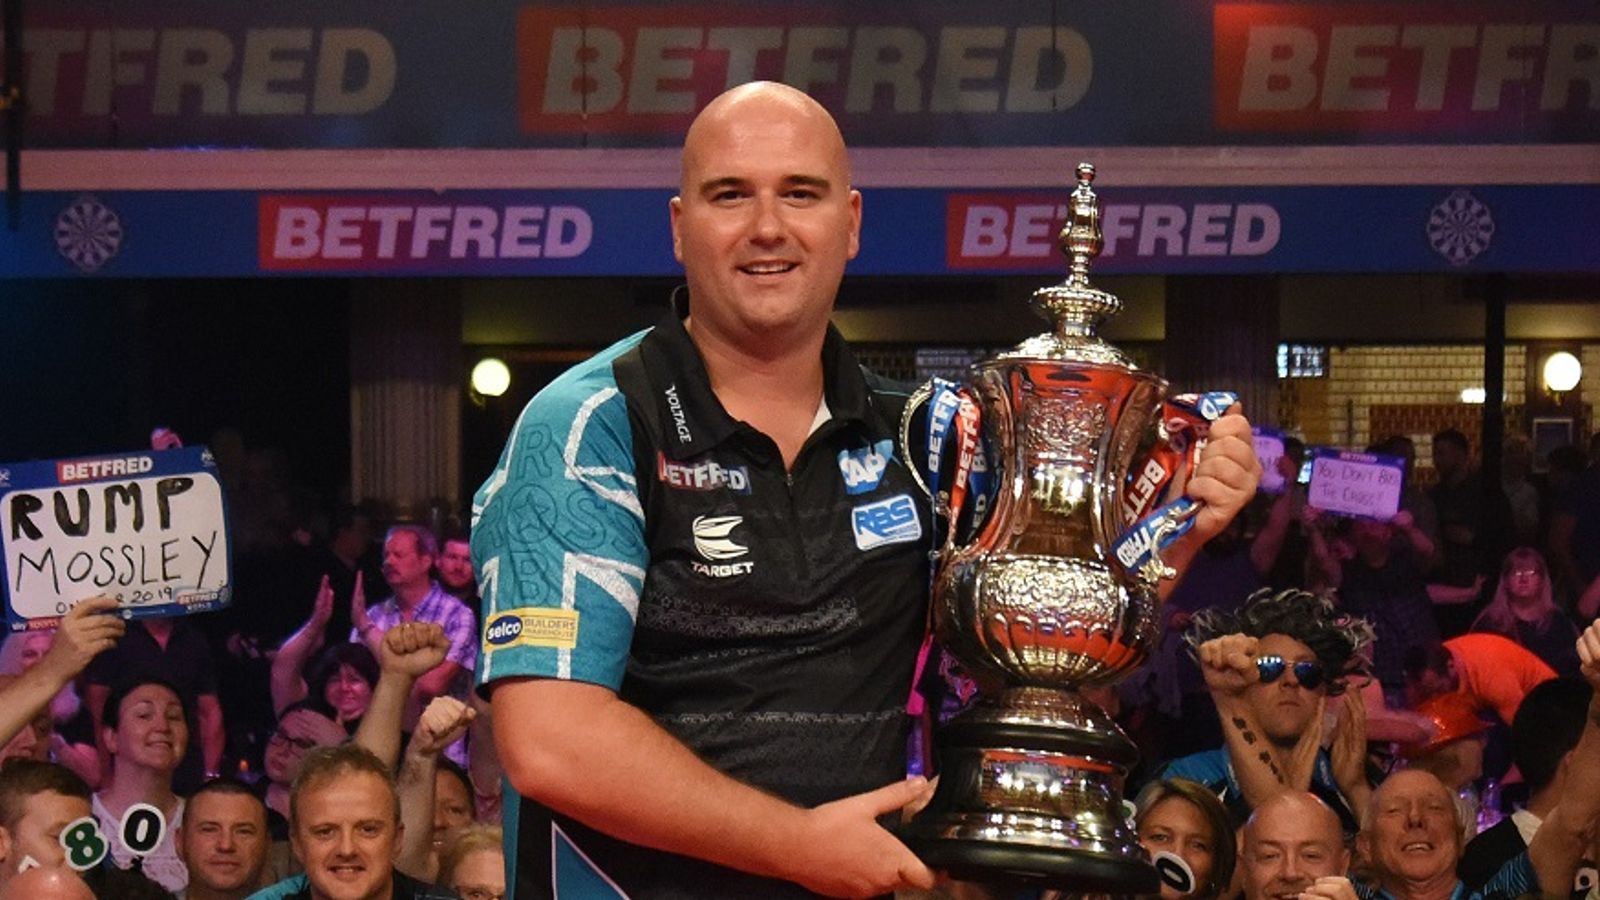 Pdc World Matchplay 2021